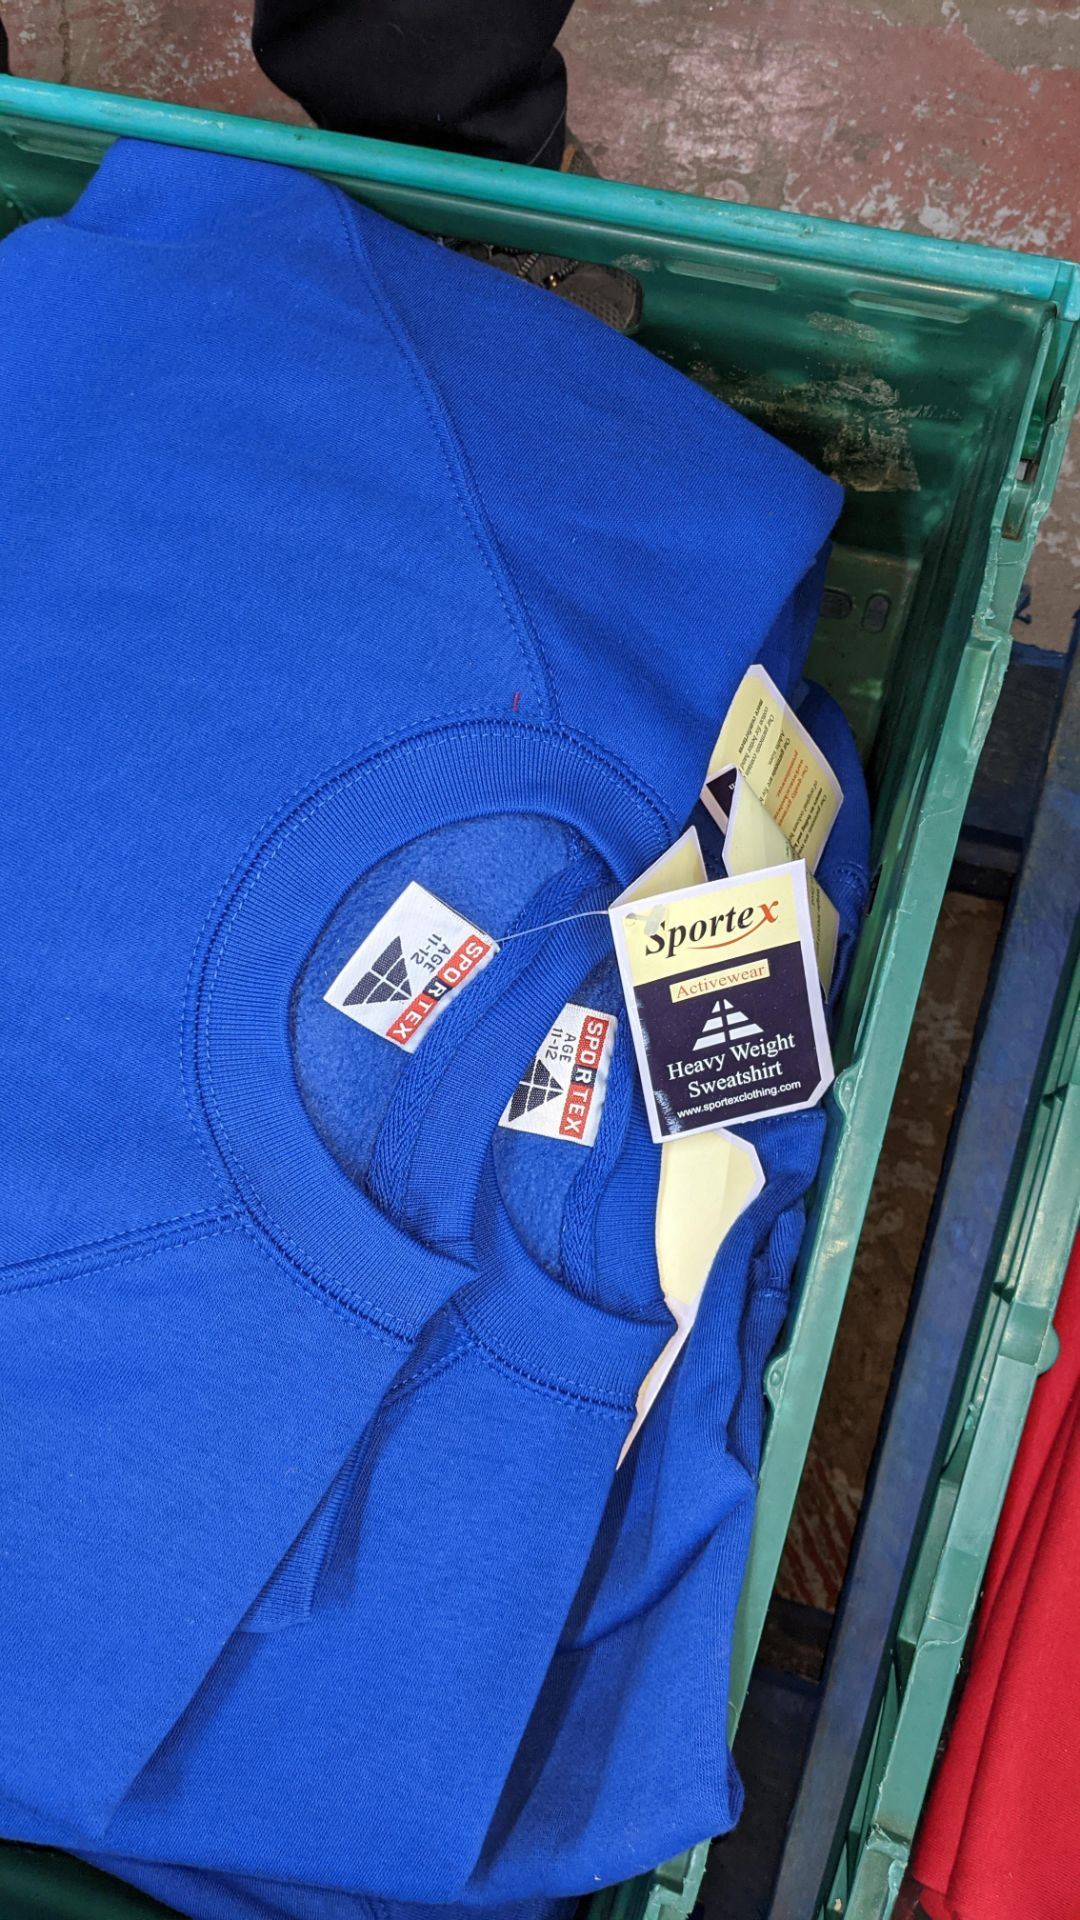 Approx 15 off Sportex children's assorted sweatshirts - the contents of 2 crates. NB crates exclude - Image 5 of 6